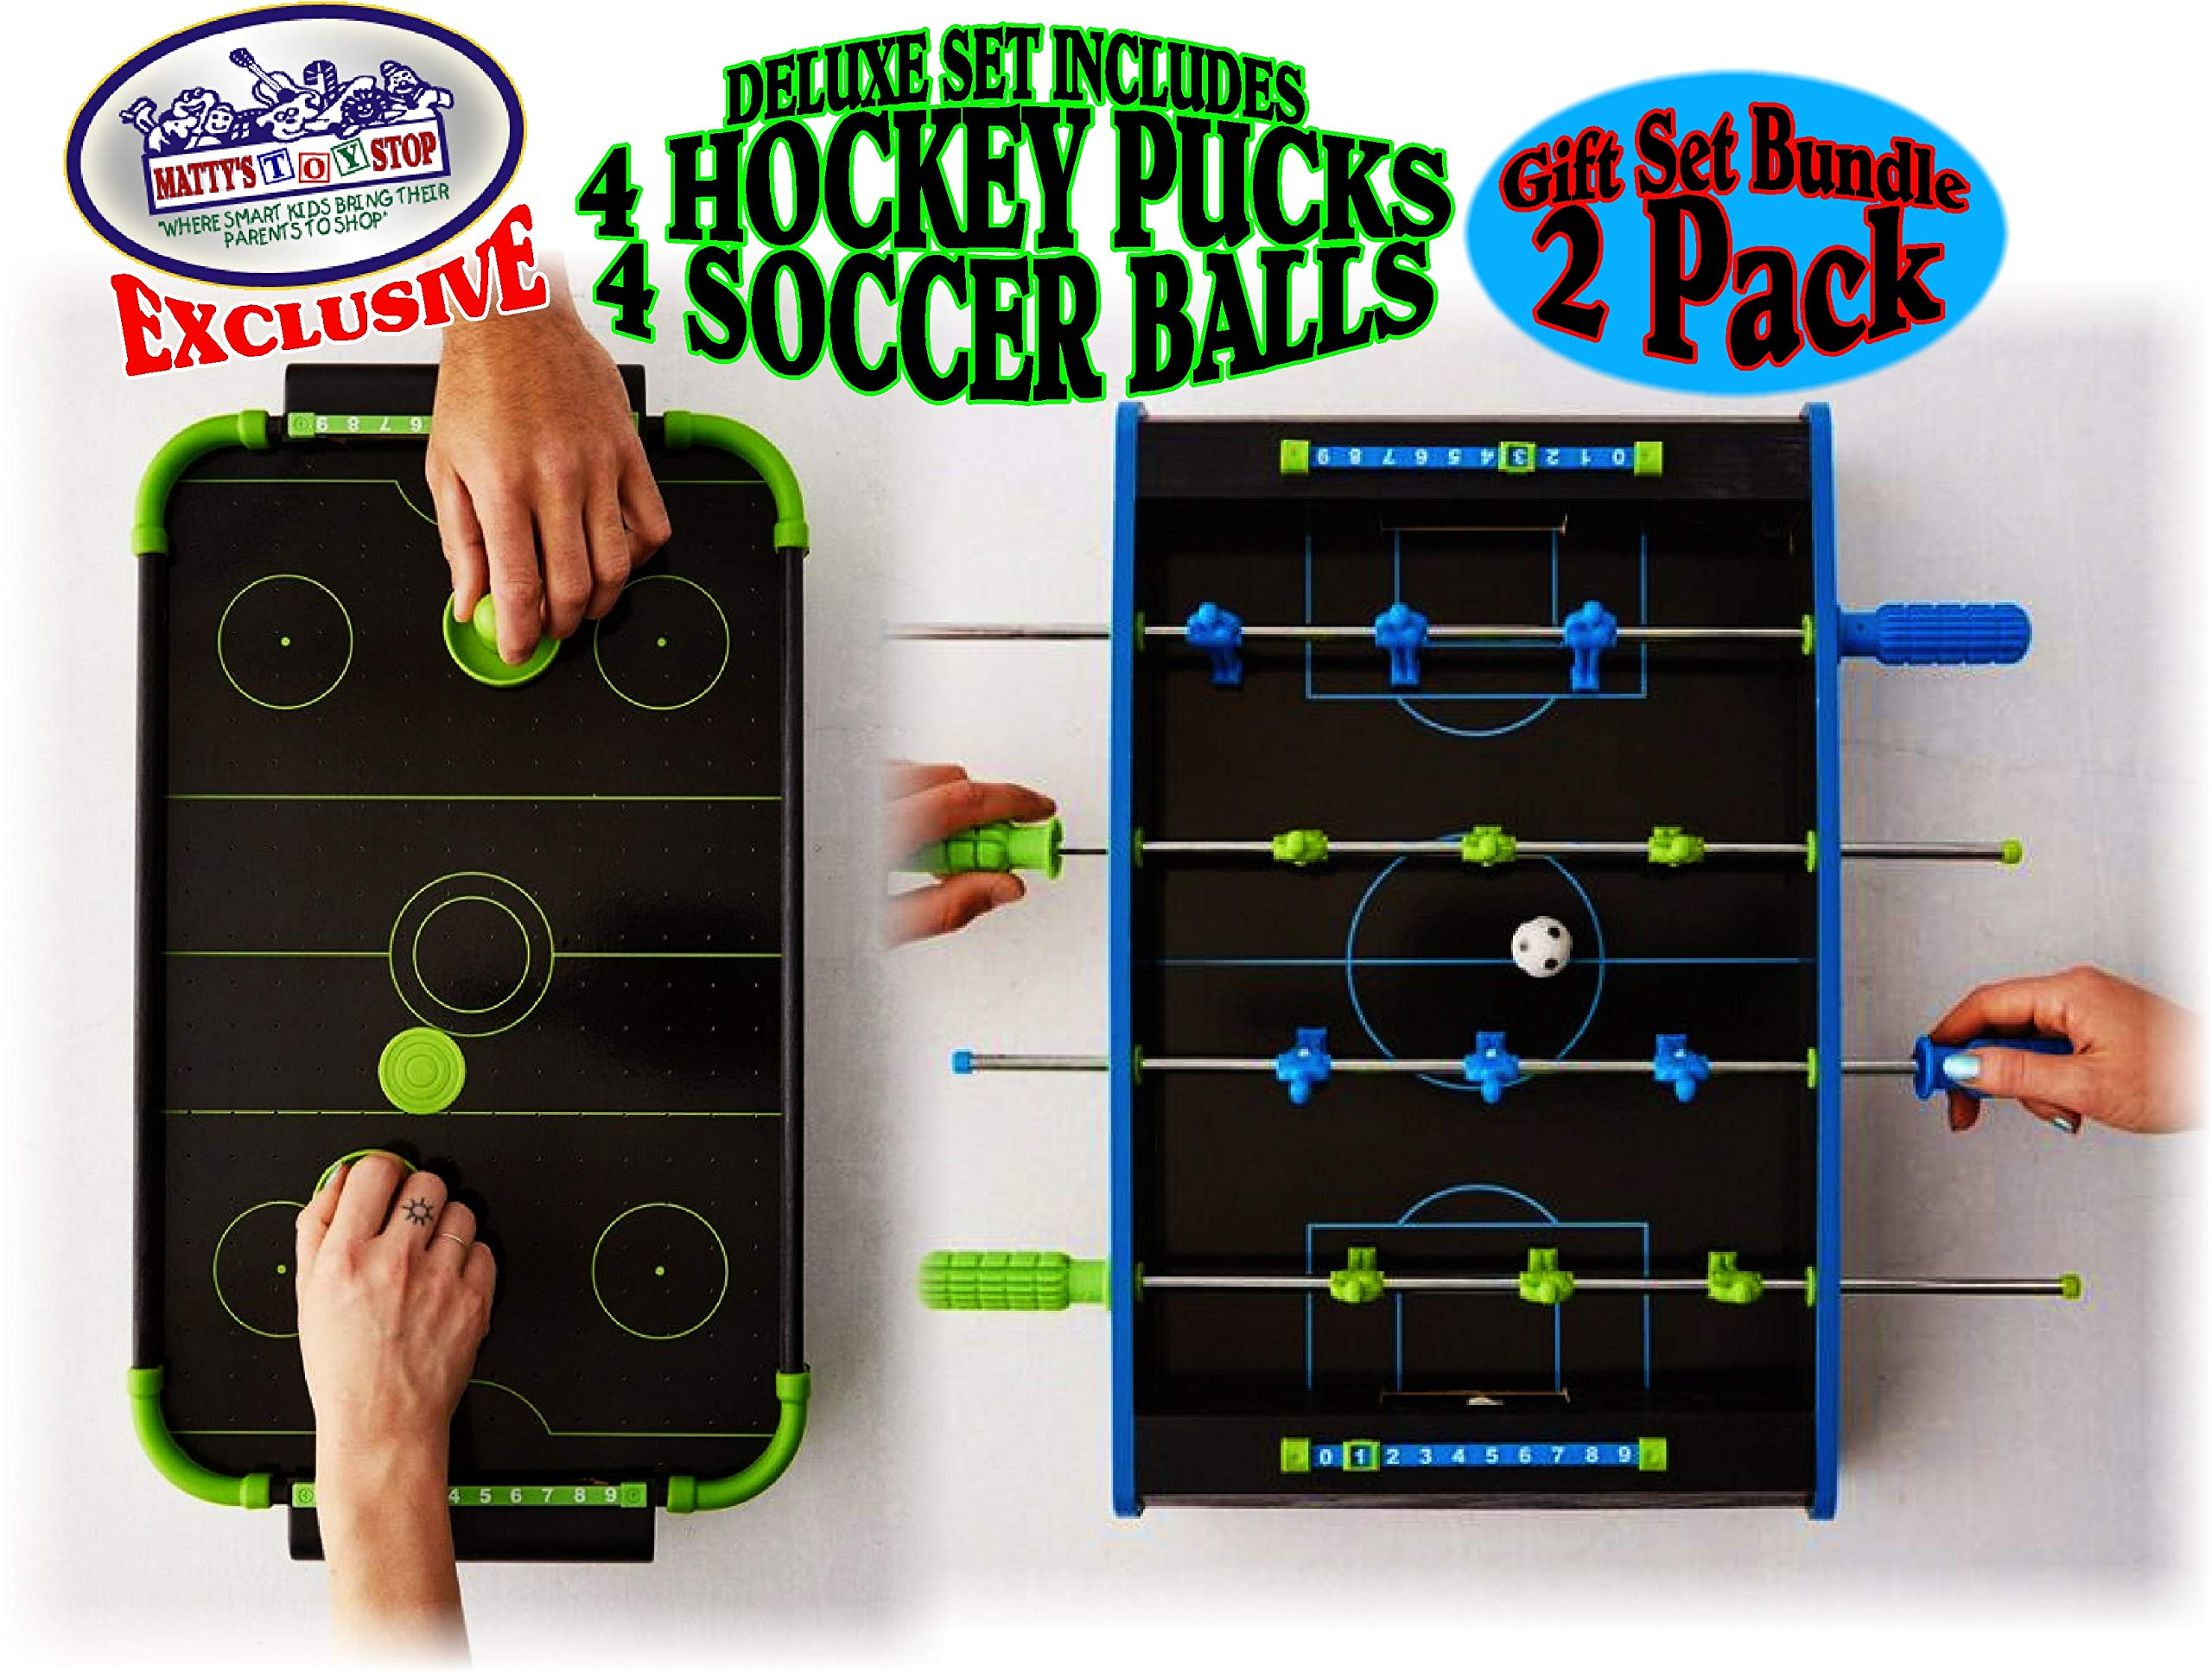 Matty's Toy Stop Deluxe Wooden Mini Tabletop NEON Air Hockey (Extra Pucks) & NEON Foosball (Soccer) (Extra Balls) Games Gift Set Bundle - 2 Pack